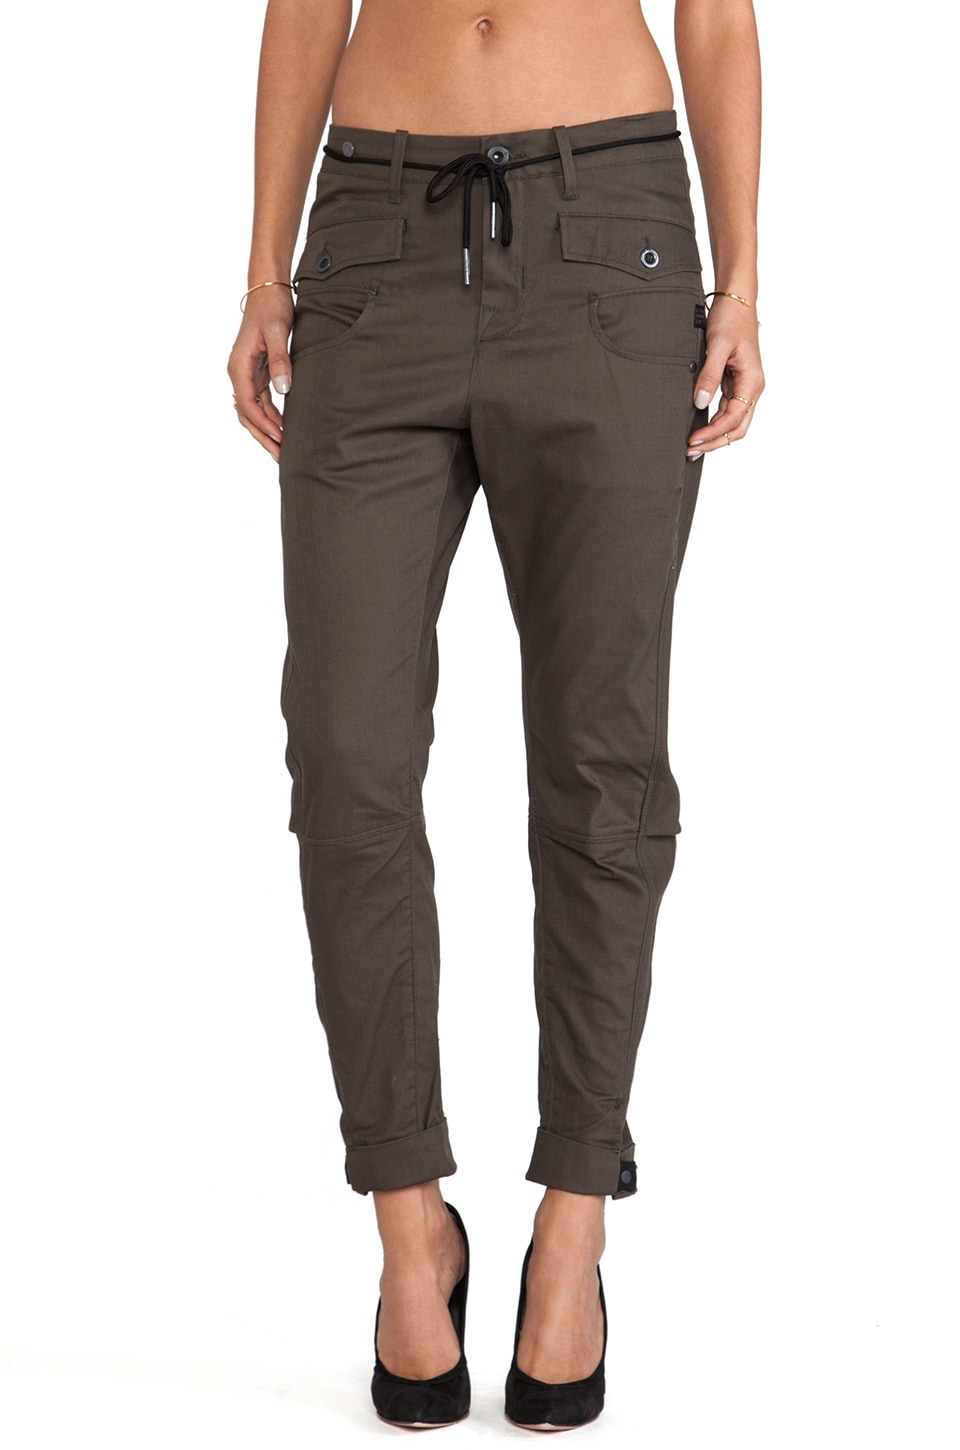 G-Star Army Radar Losse Tapered Pant in Gun Metal